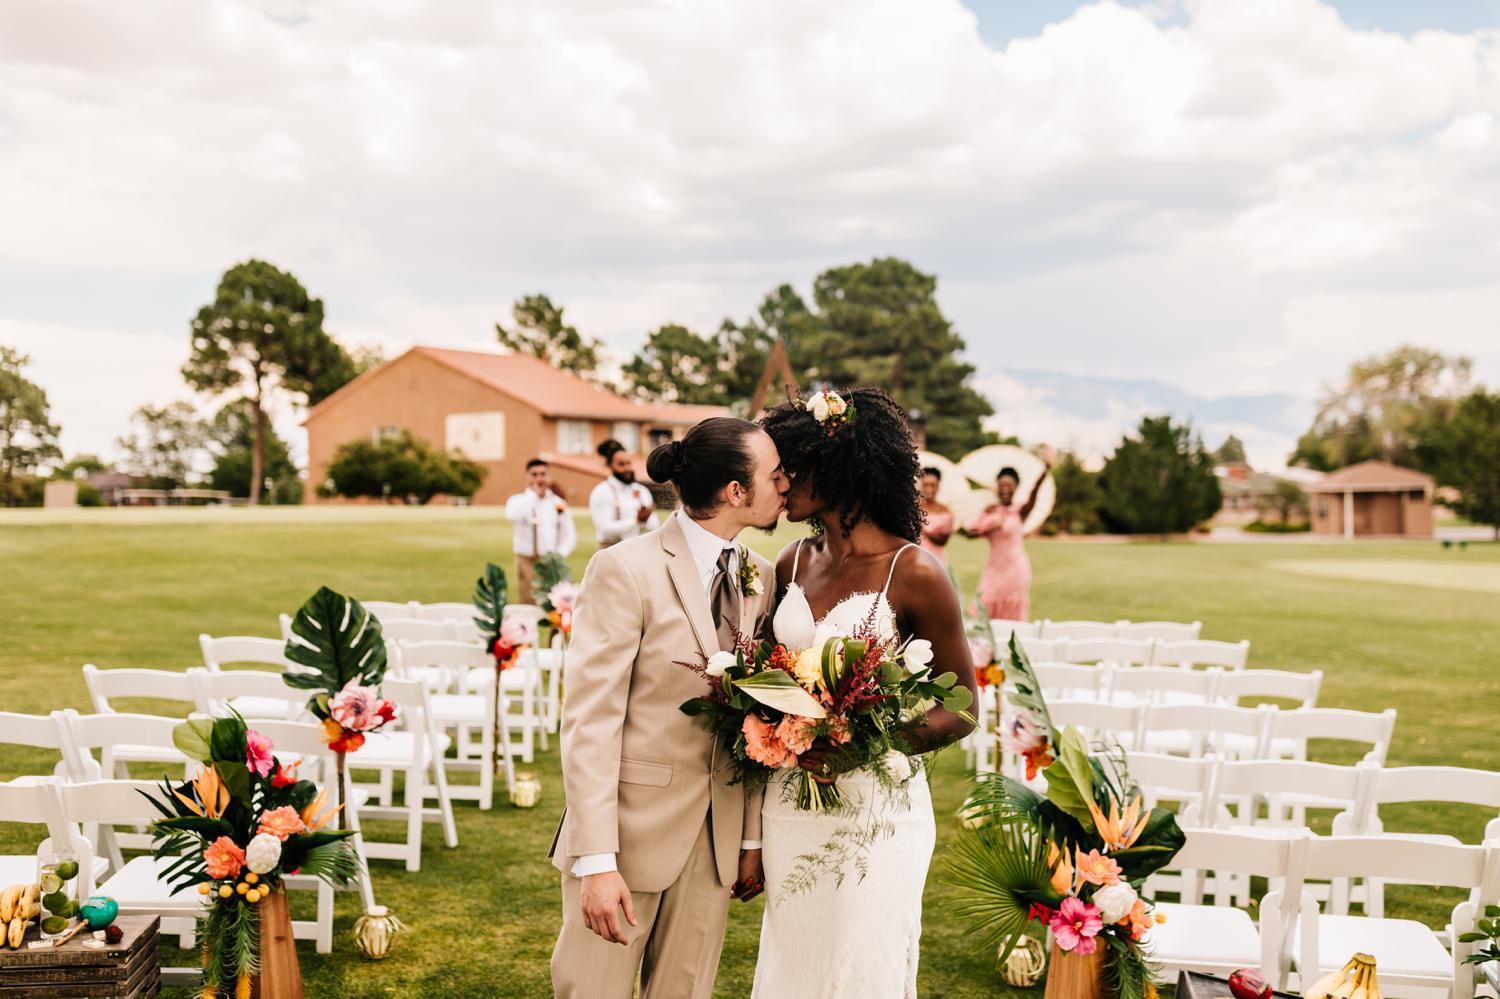 Bride and groom walk up the aisle for tropical themed wedding ceremony in Albuqueque, New Mexico